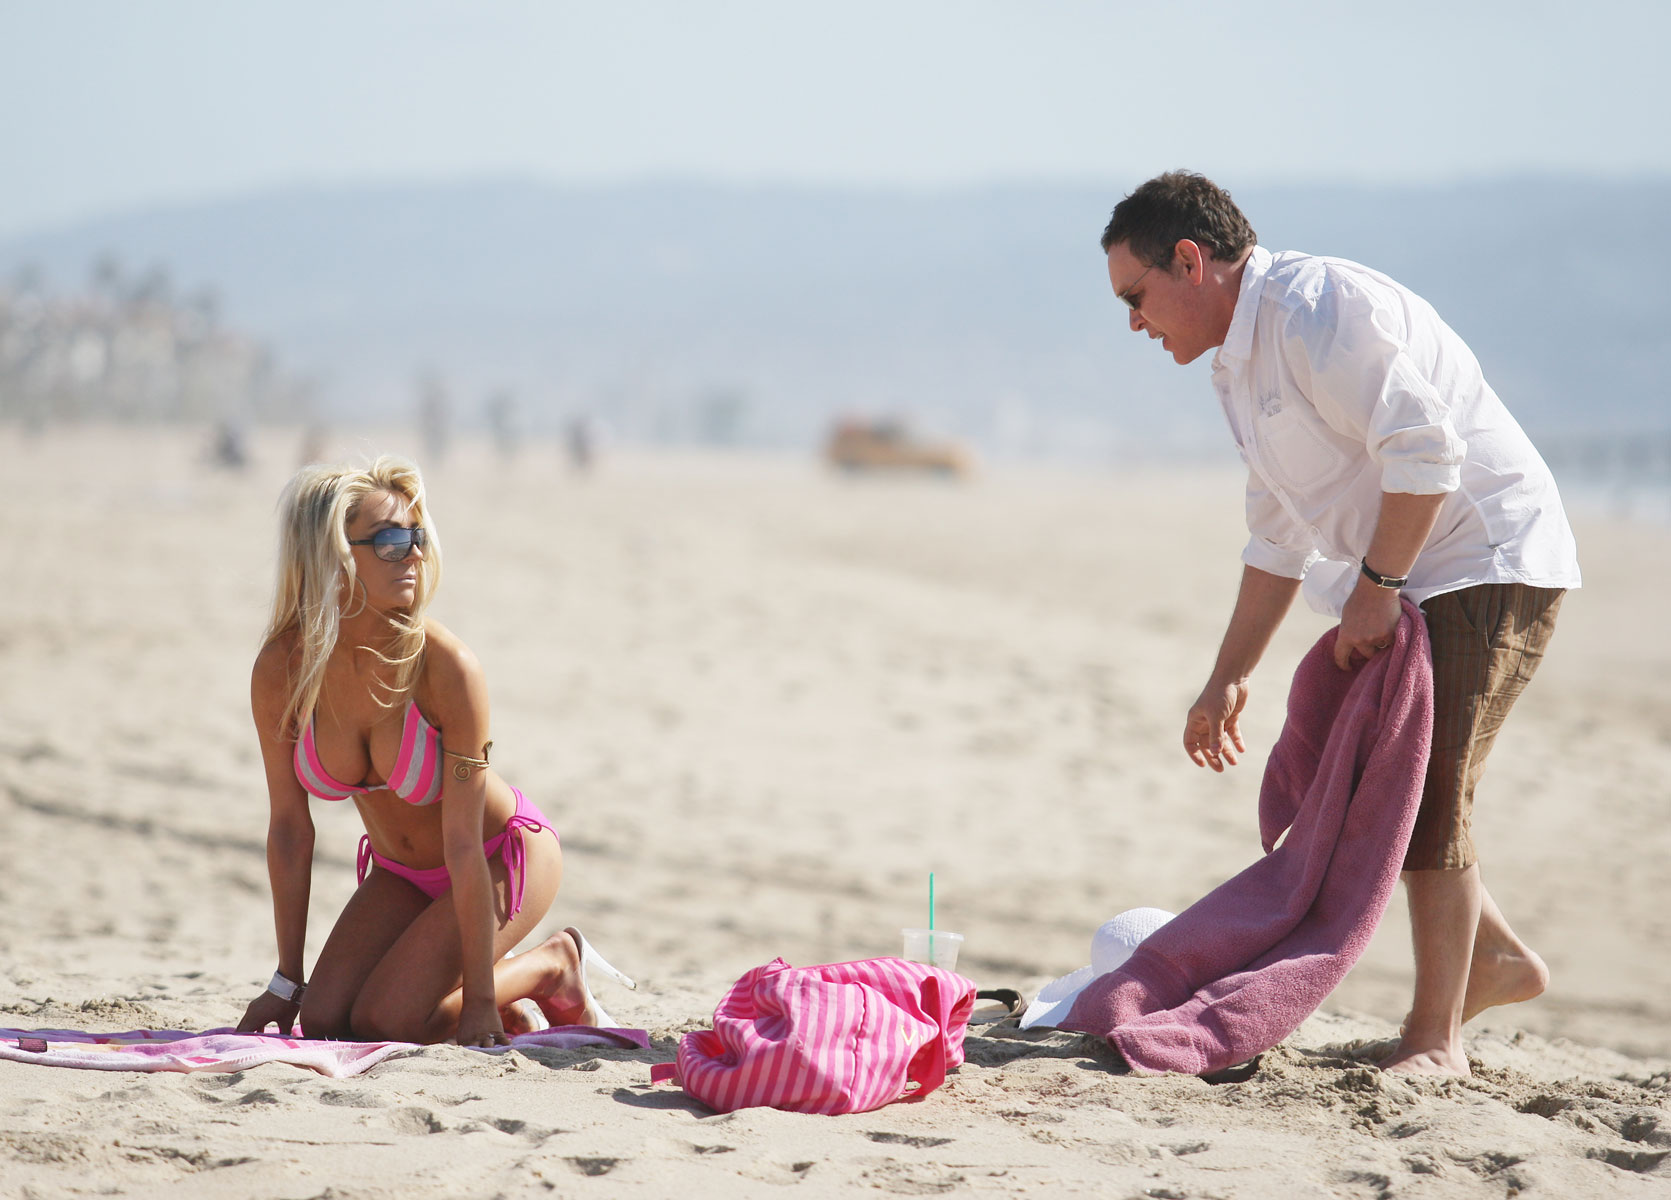 Courtney Stodden in Bikini on the beach in Malibu Pic 8 of 35